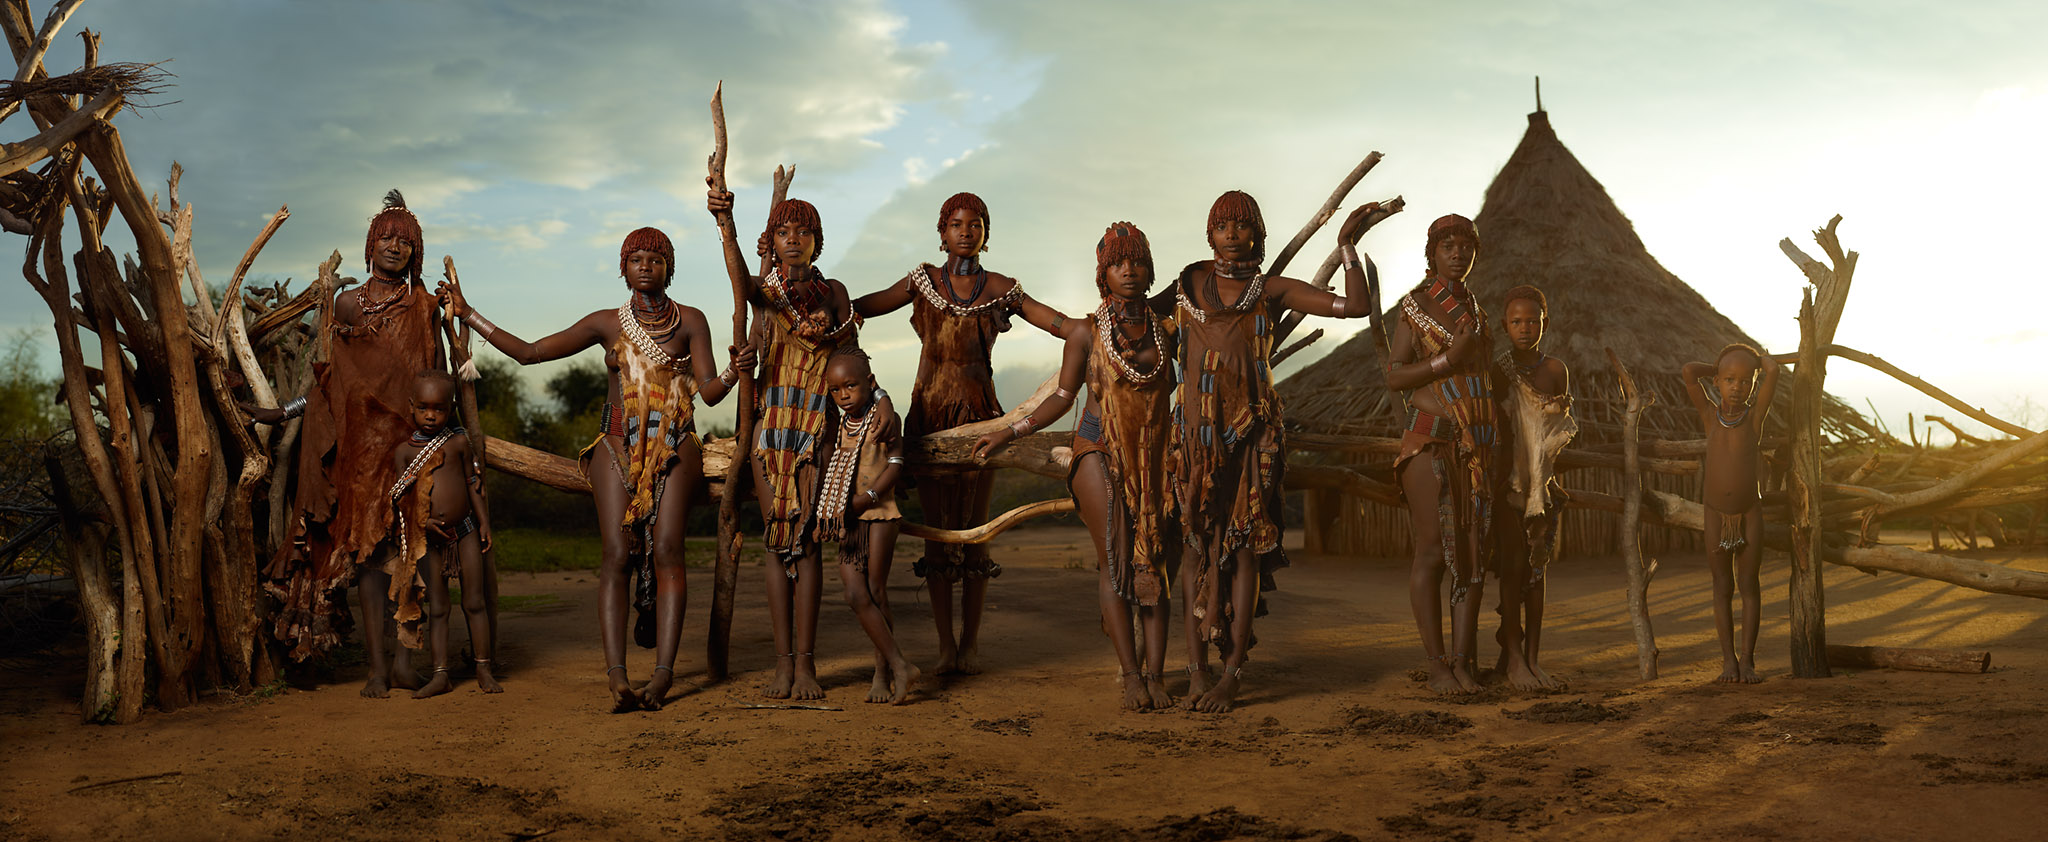 hamar nation of omo valley